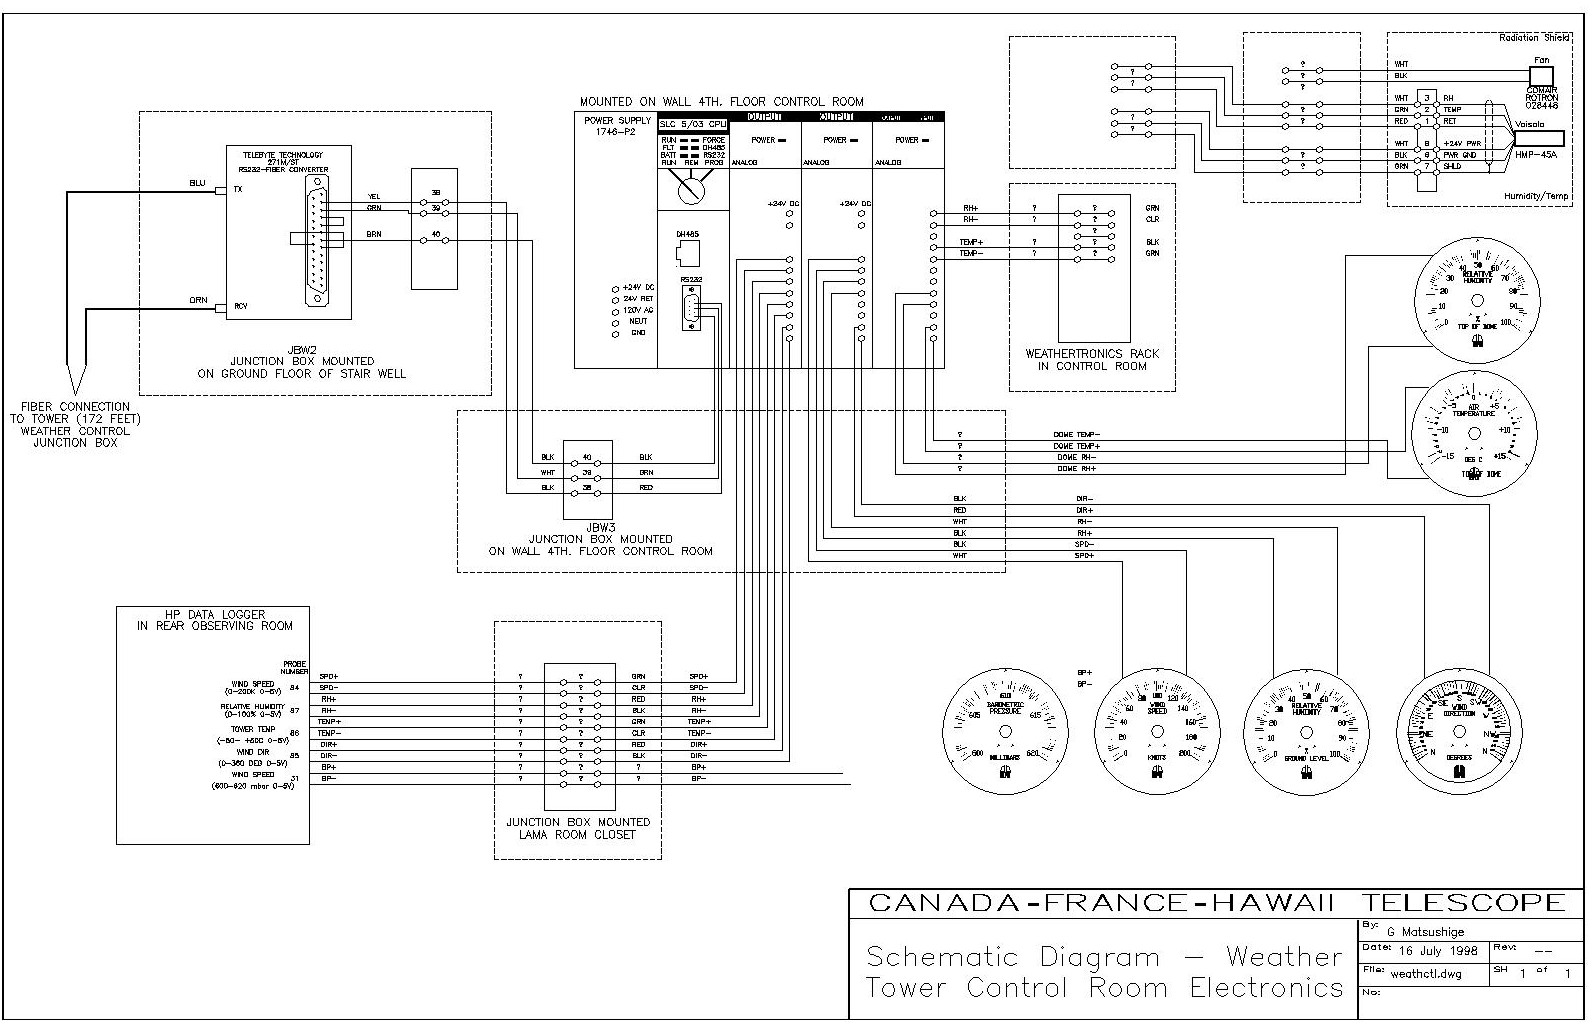 ctl_room_sch mcc bucket wiring diagram electric motor symbol \u2022 wiring diagrams how to read plc wiring diagrams at nearapp.co